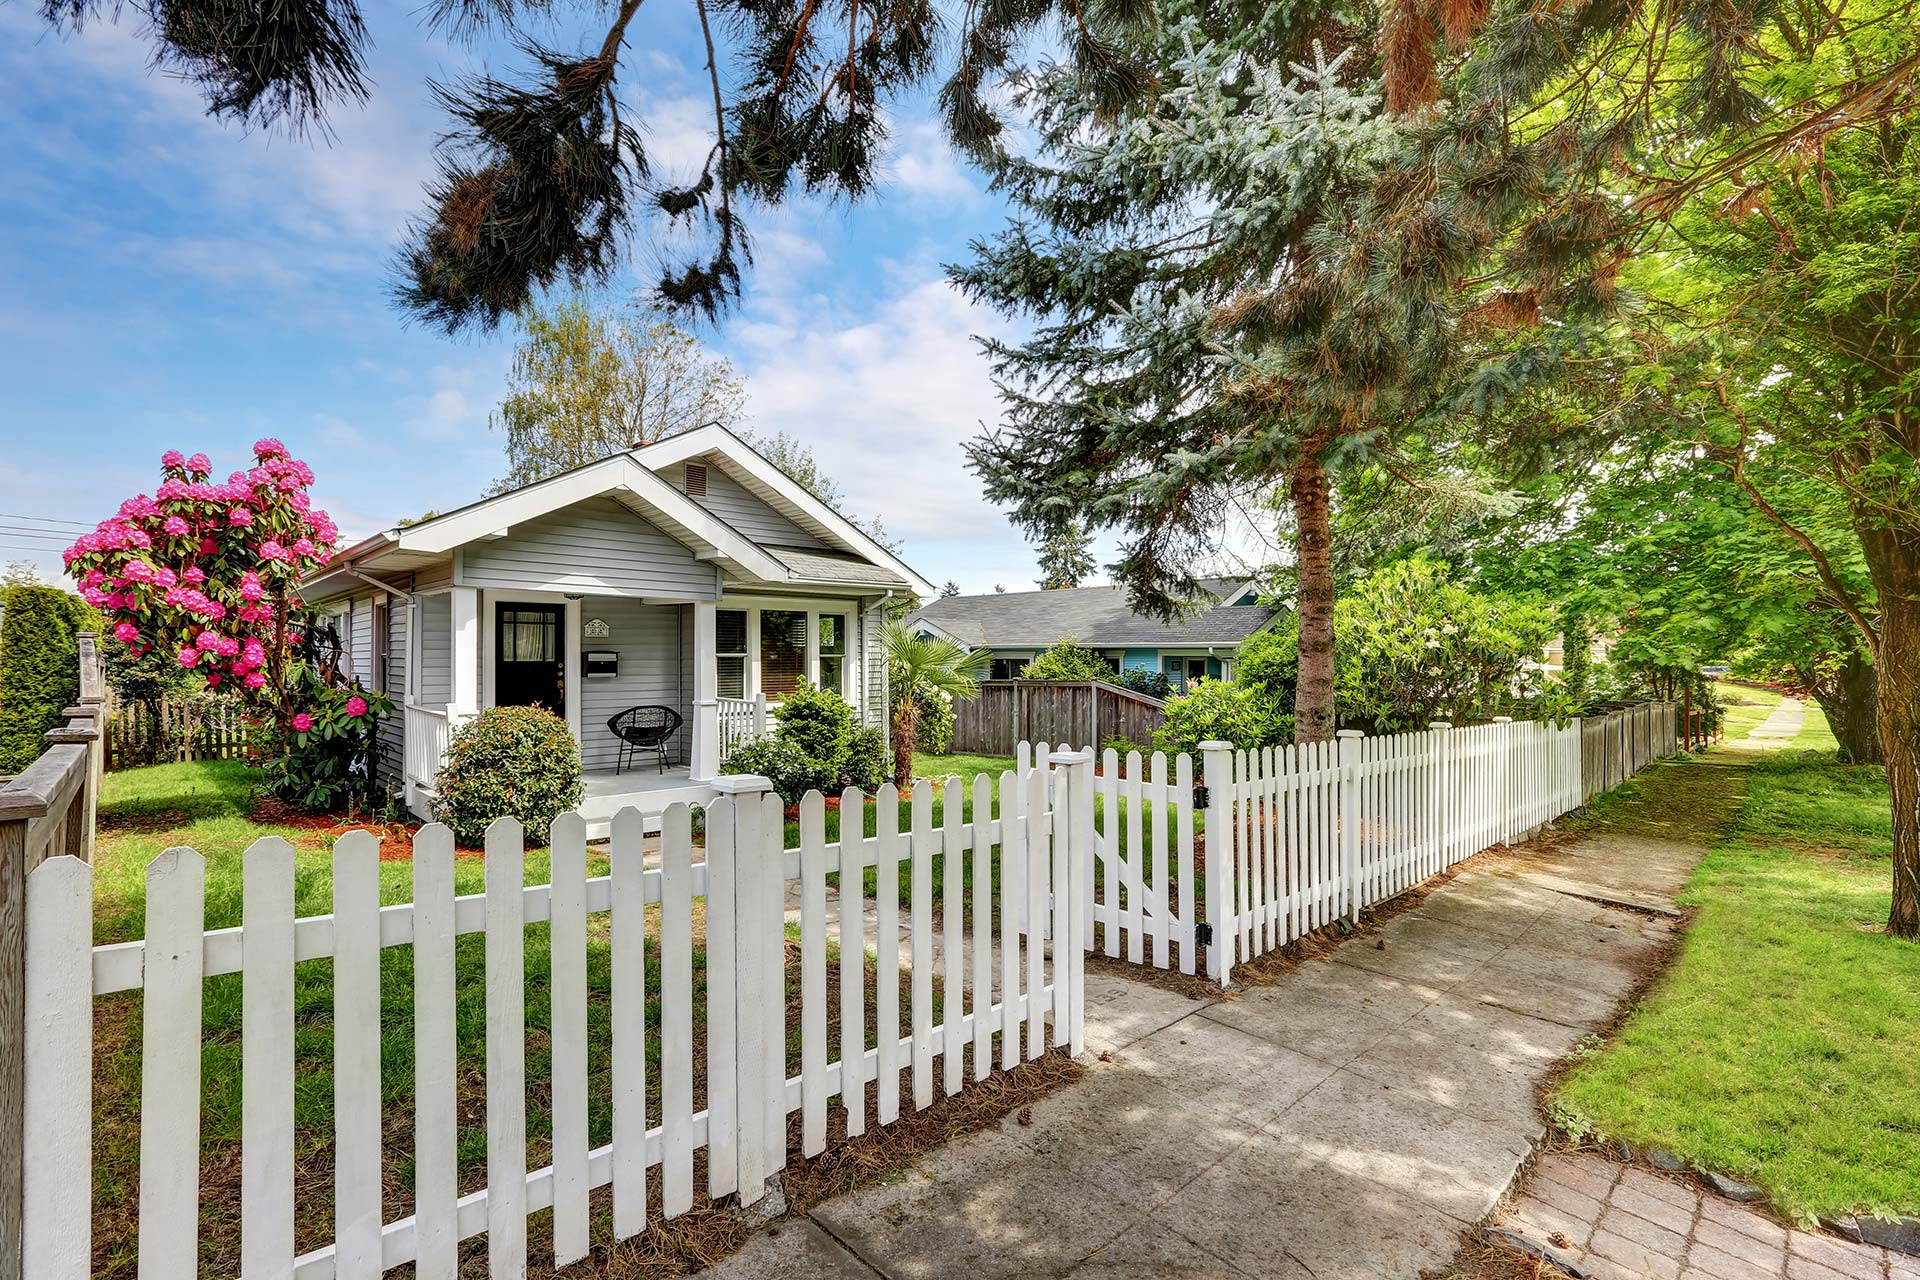 cute cottage style home with picket fence